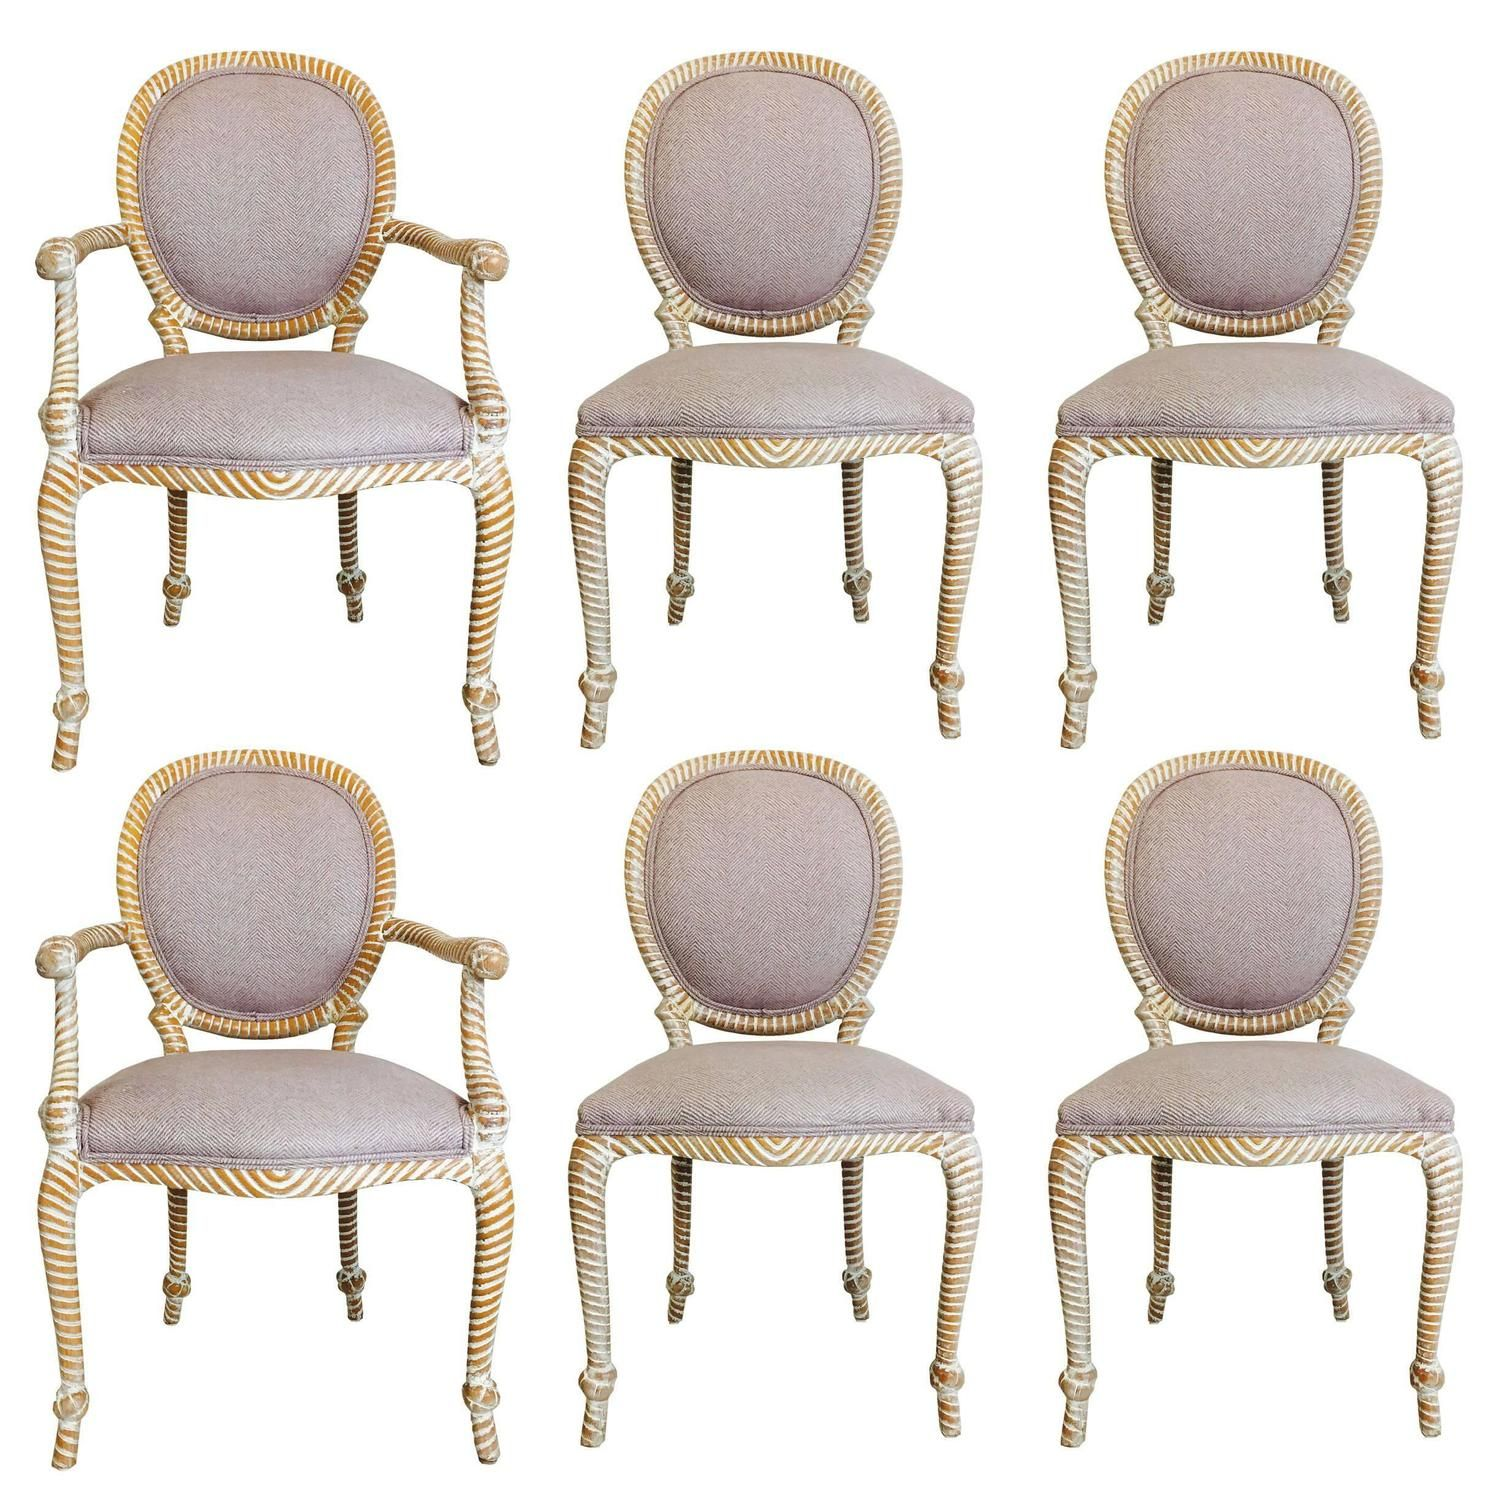 8eb00540e250d Set of Six Carved Rope Dining Chairs with White Washed Finish ...